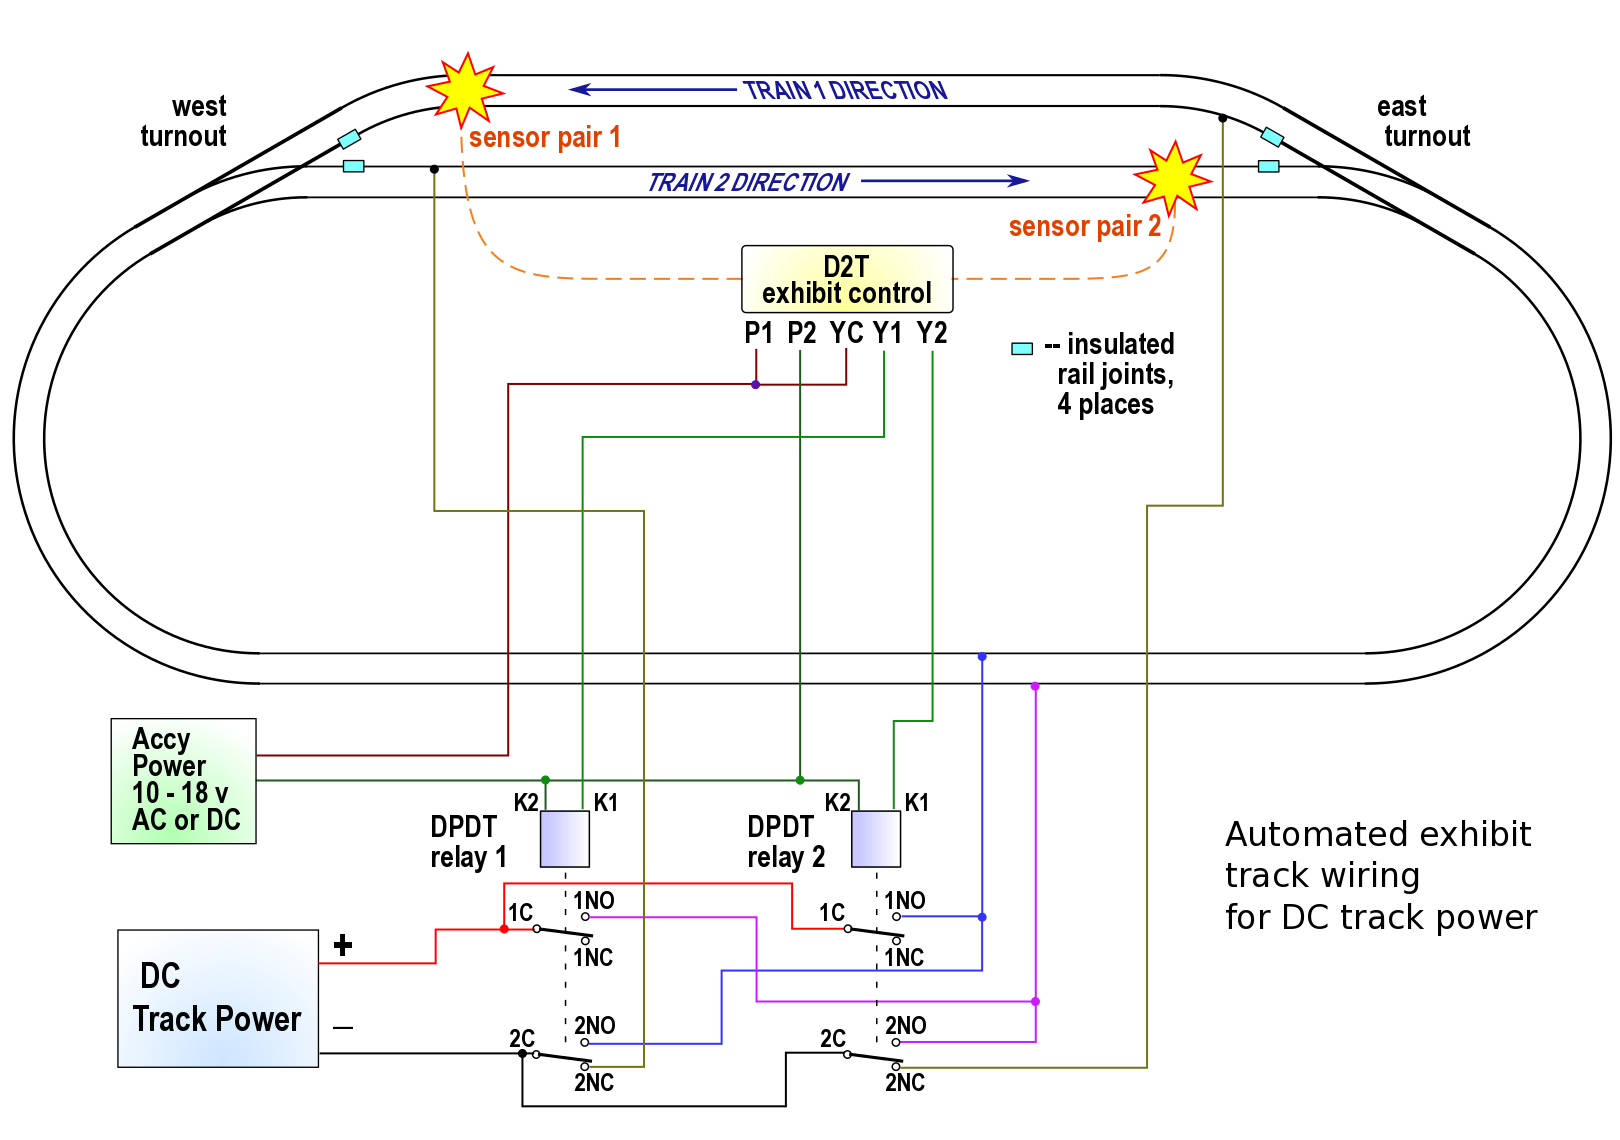 hight resolution of loop wiring diagram for dc